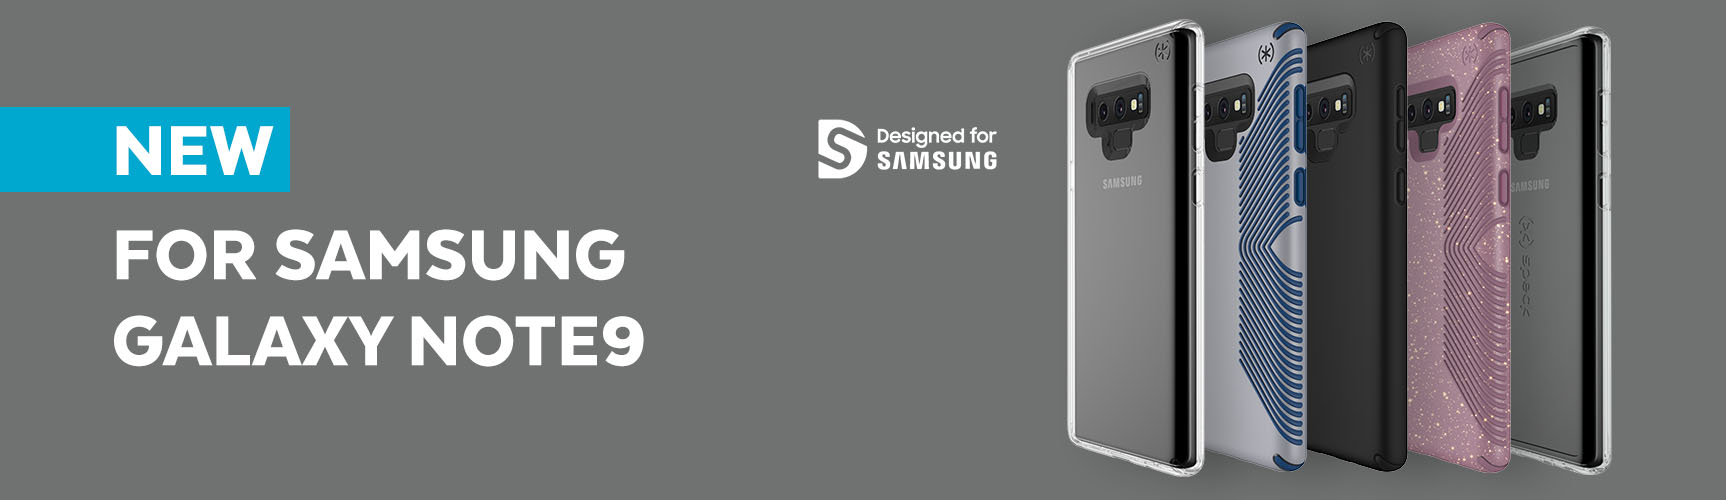 New for Samsung Galaxy Note9